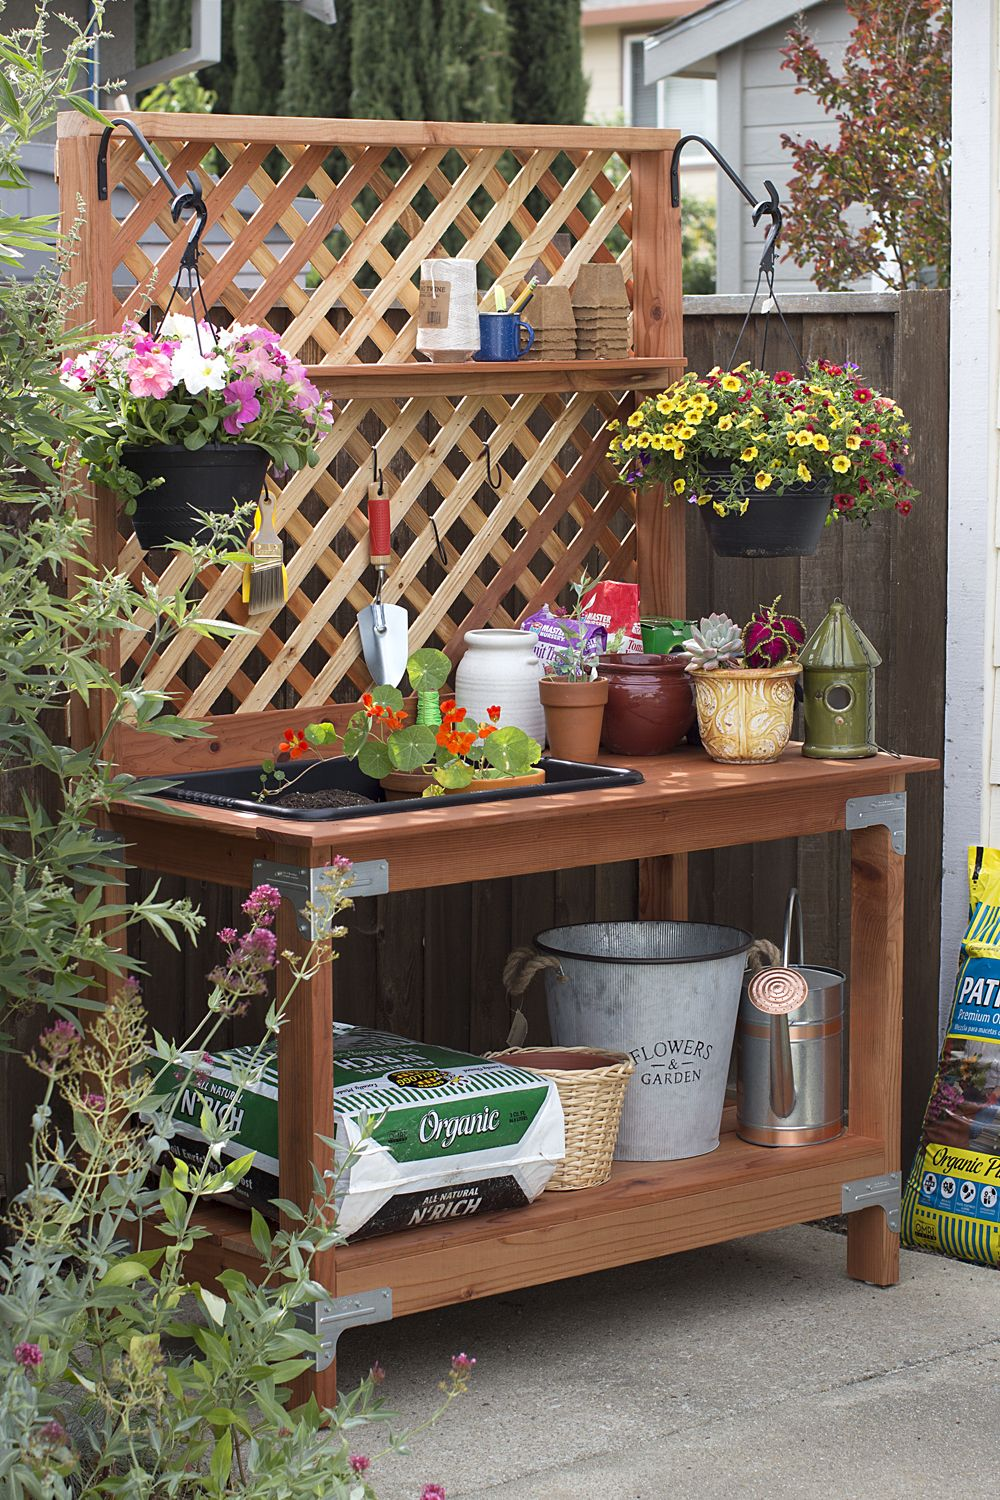 16 free potting bench plans to organized and make gardening work easy - Garden Work Bench